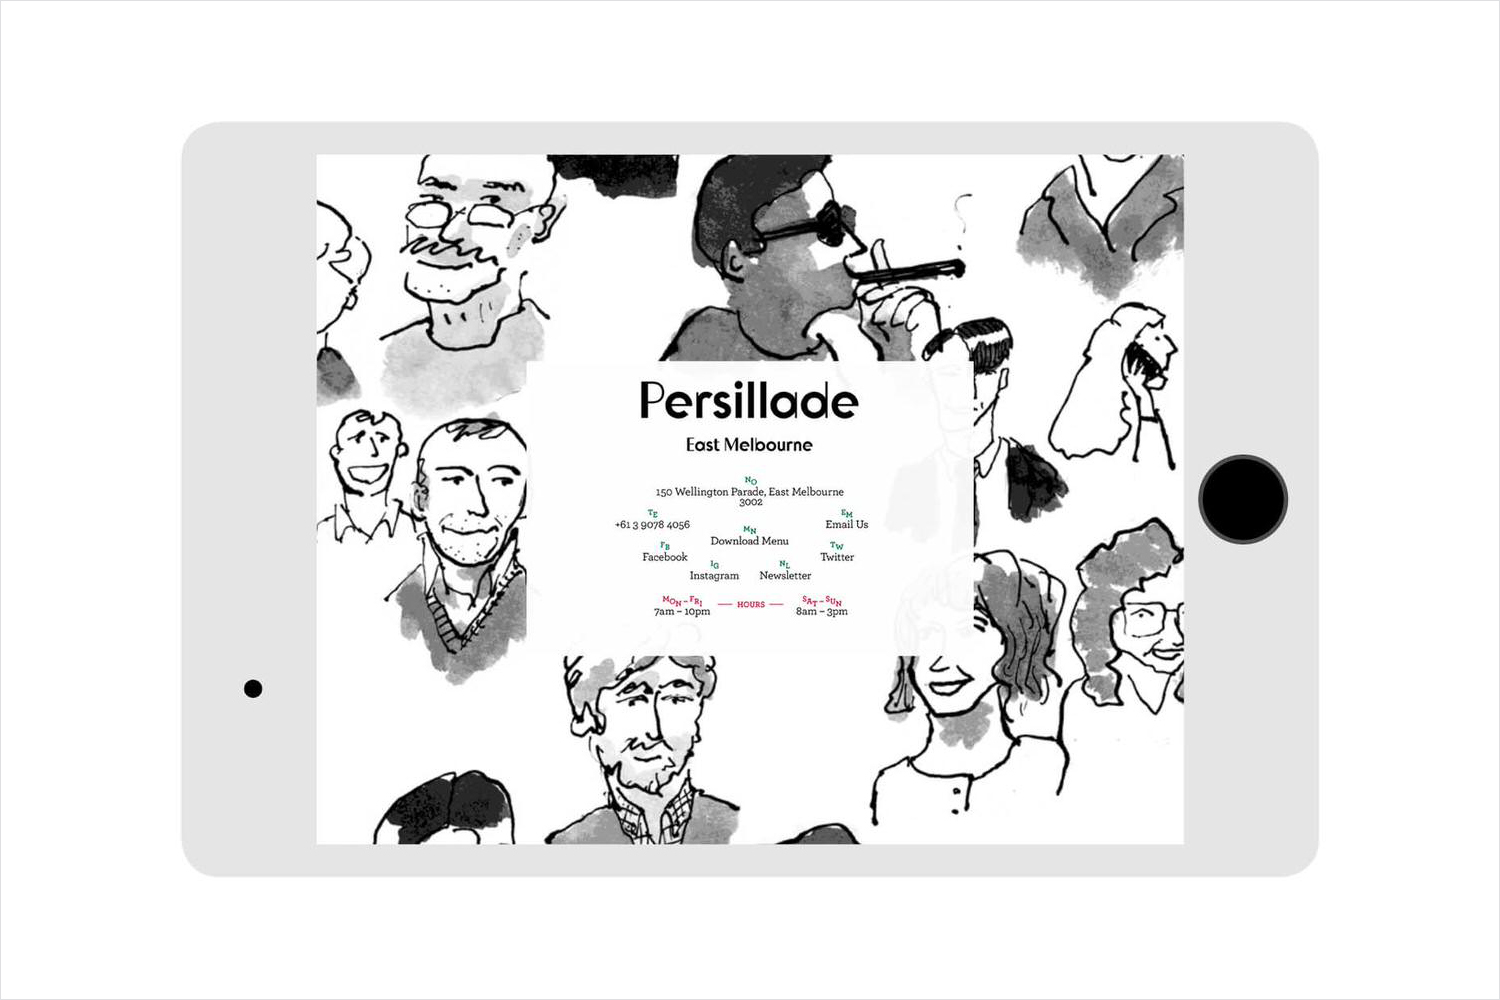 Logotype and website designed by Clear Design with illustration by Oslo Davies for Melbourne cafe Persillade